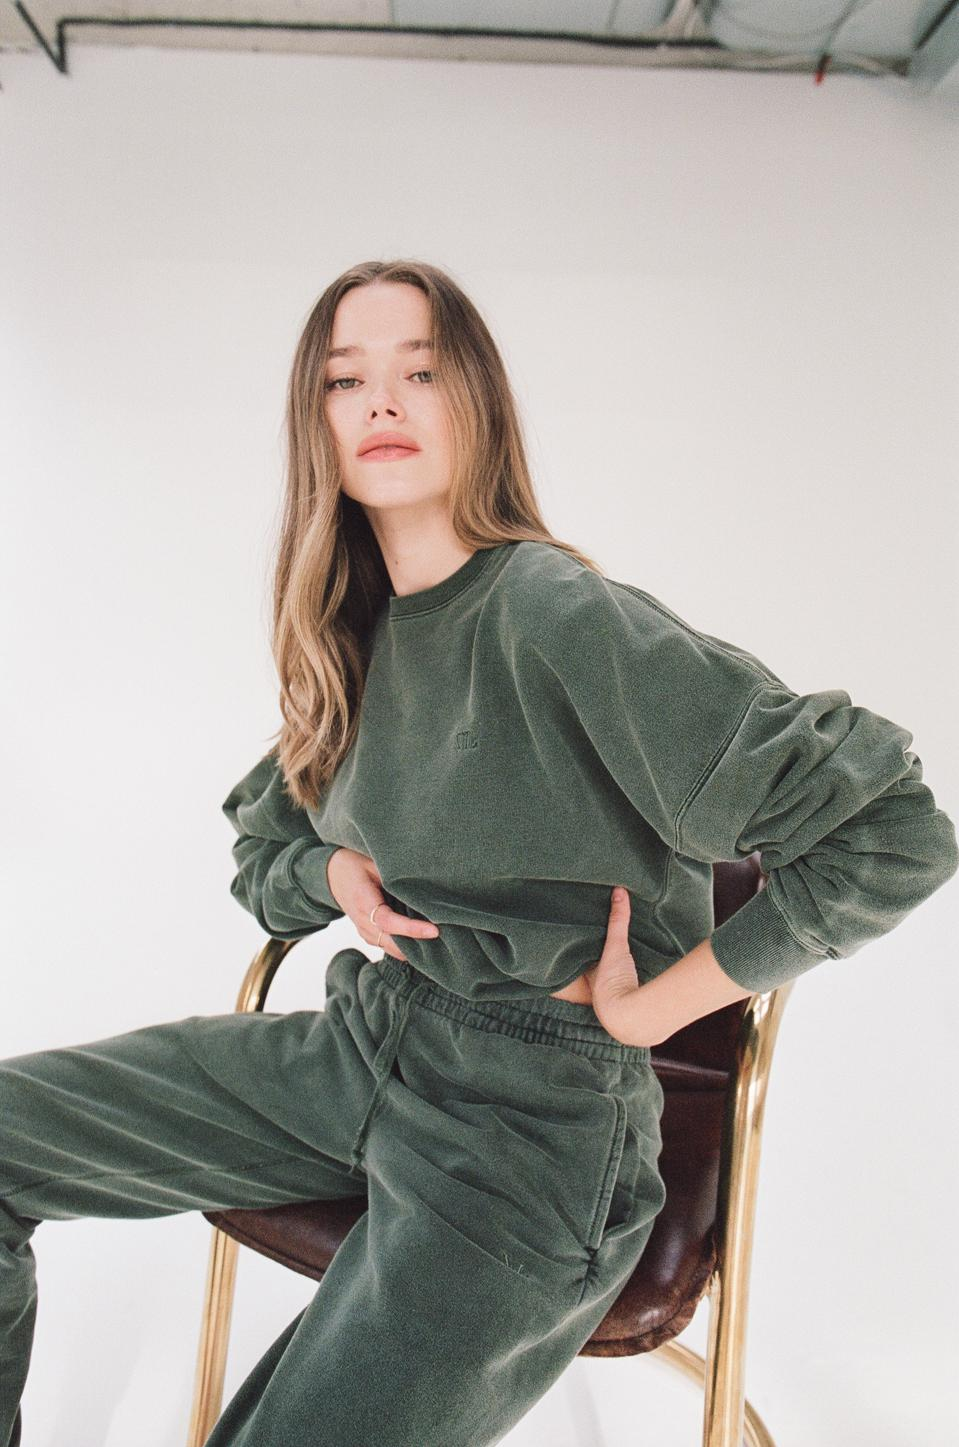 Valeria Lipovetsky wearing The Everyday Sweatset in Forest